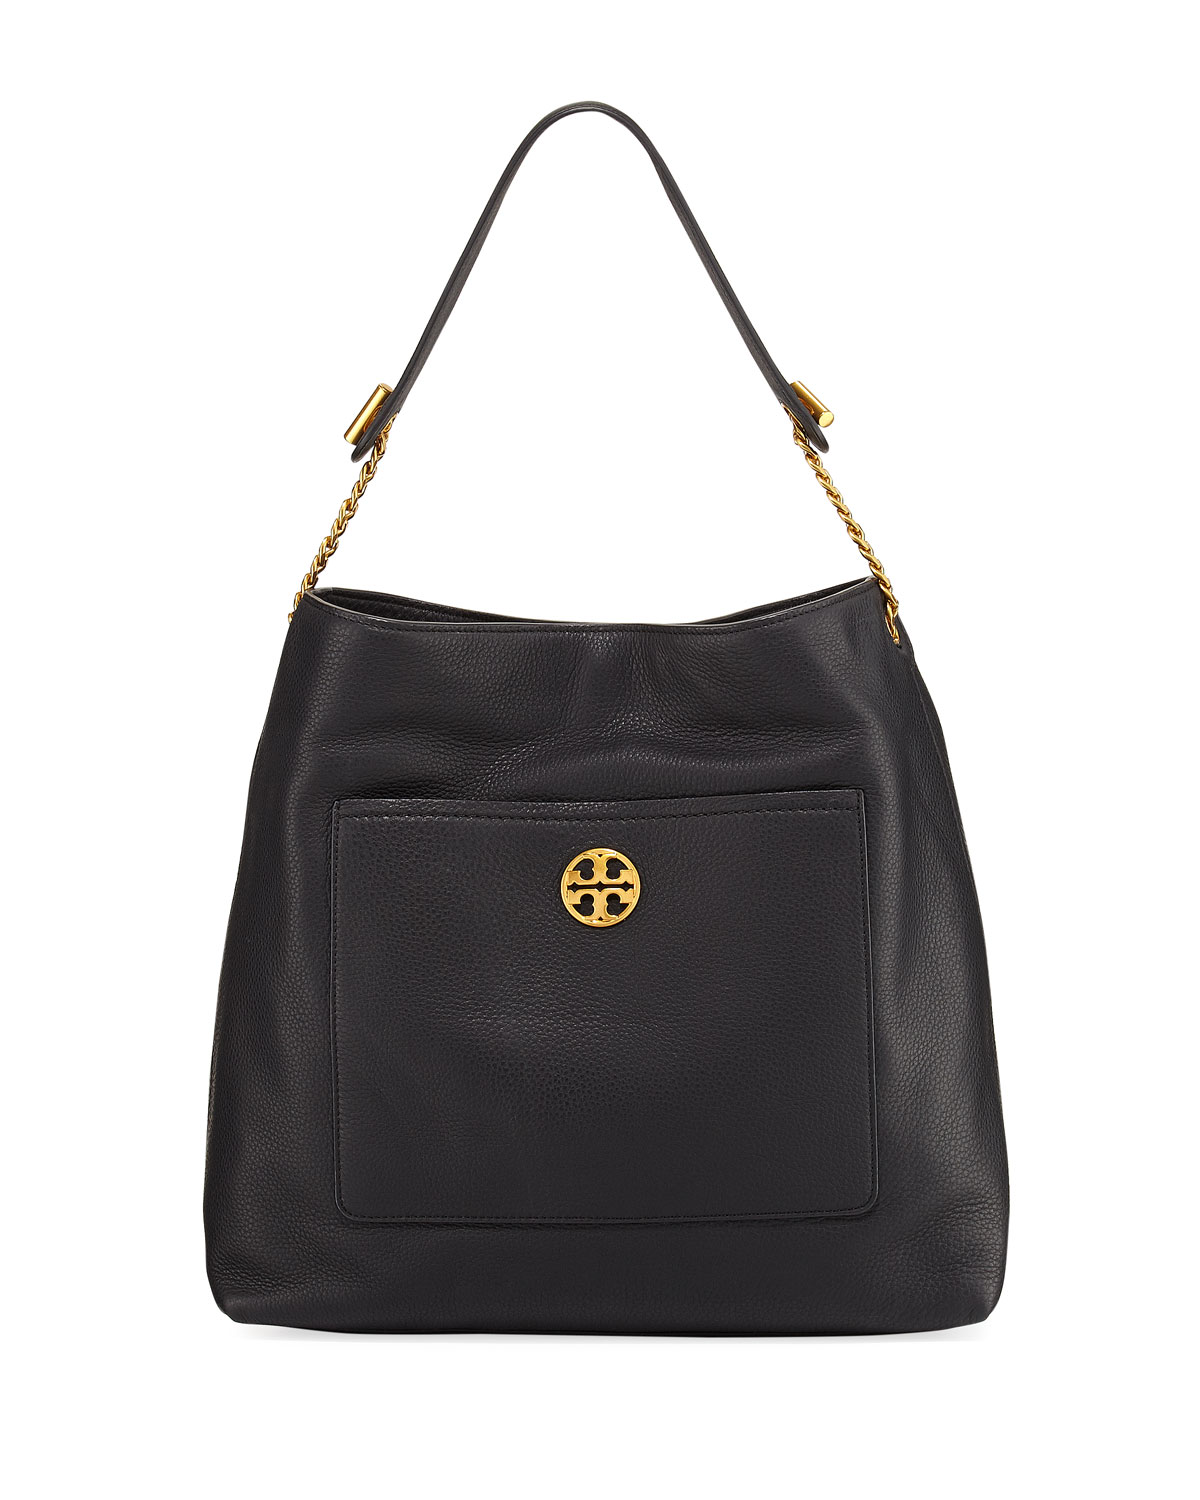 7967a5fb7384 Tory Burch Chelsea Chain Leather Hobo Bag